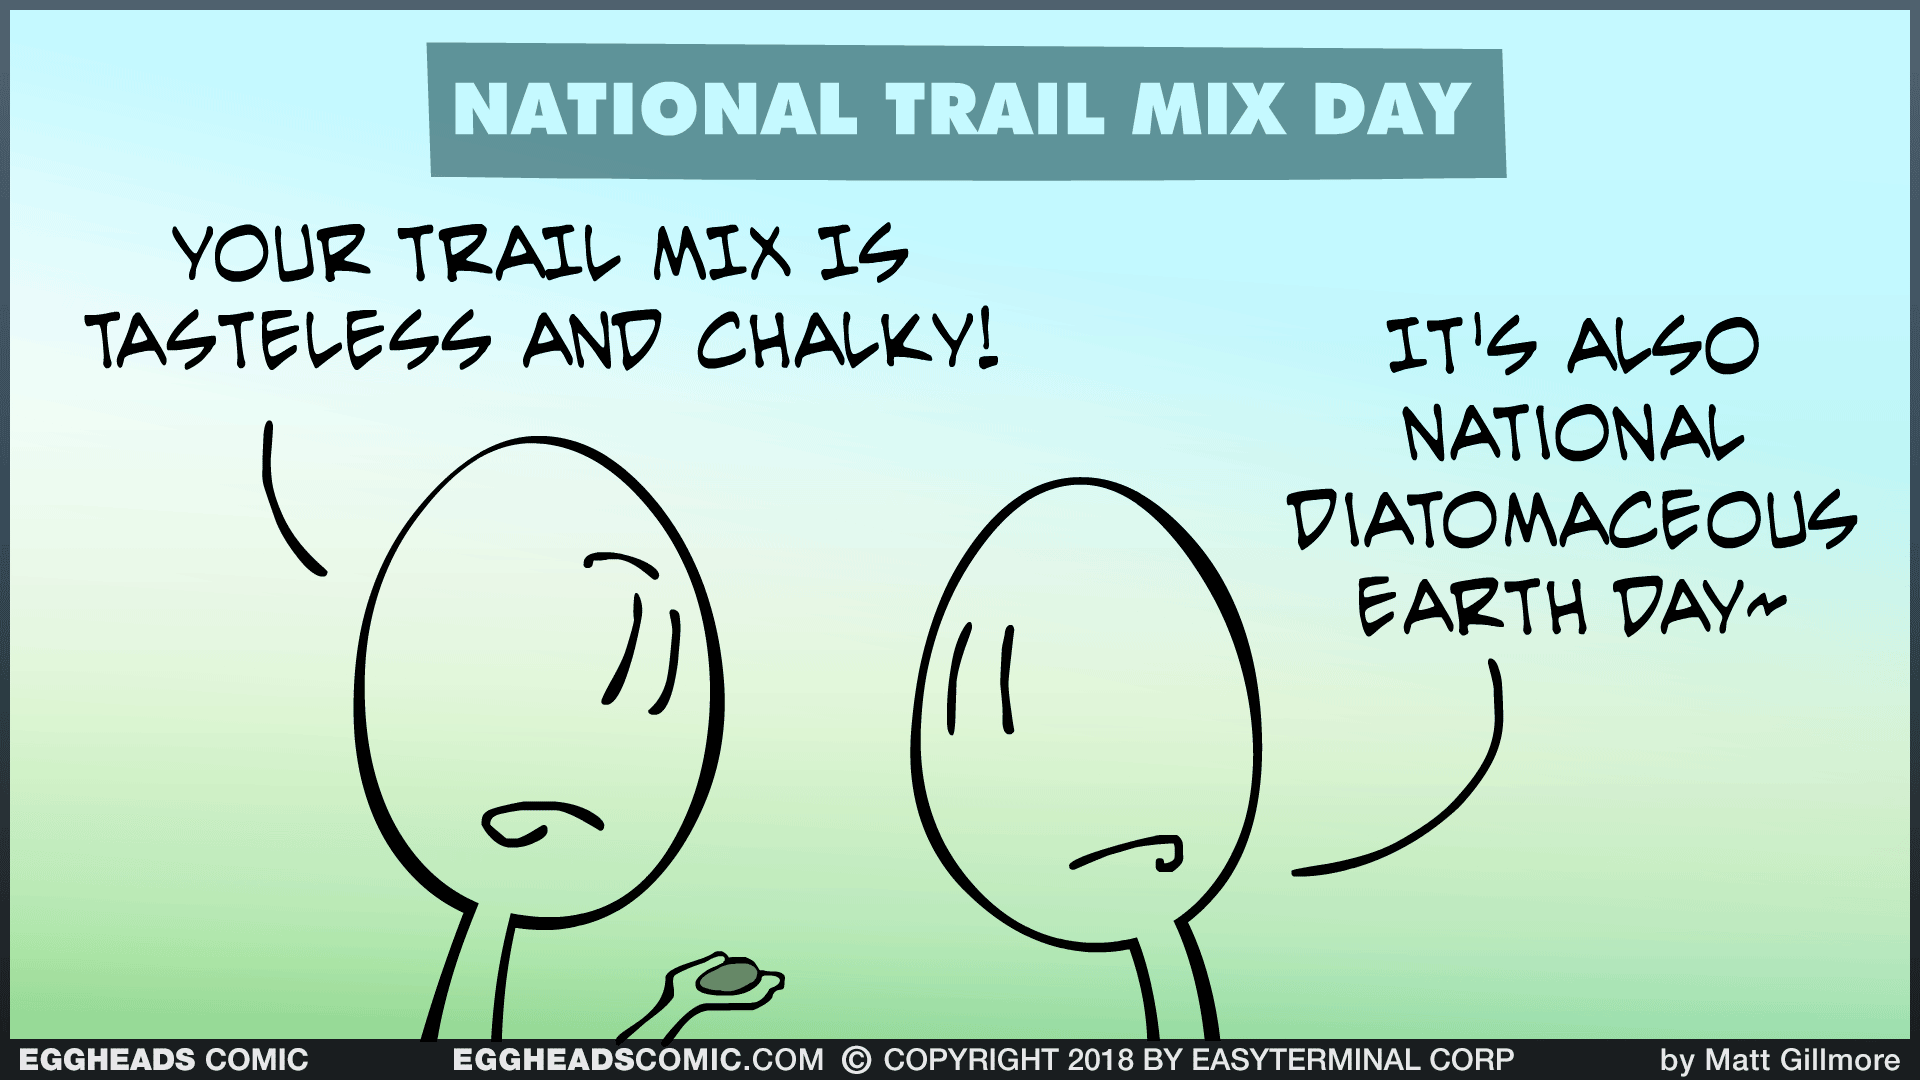 Webcomic Eggheads Comic Strip 119 National Trail Mix Day